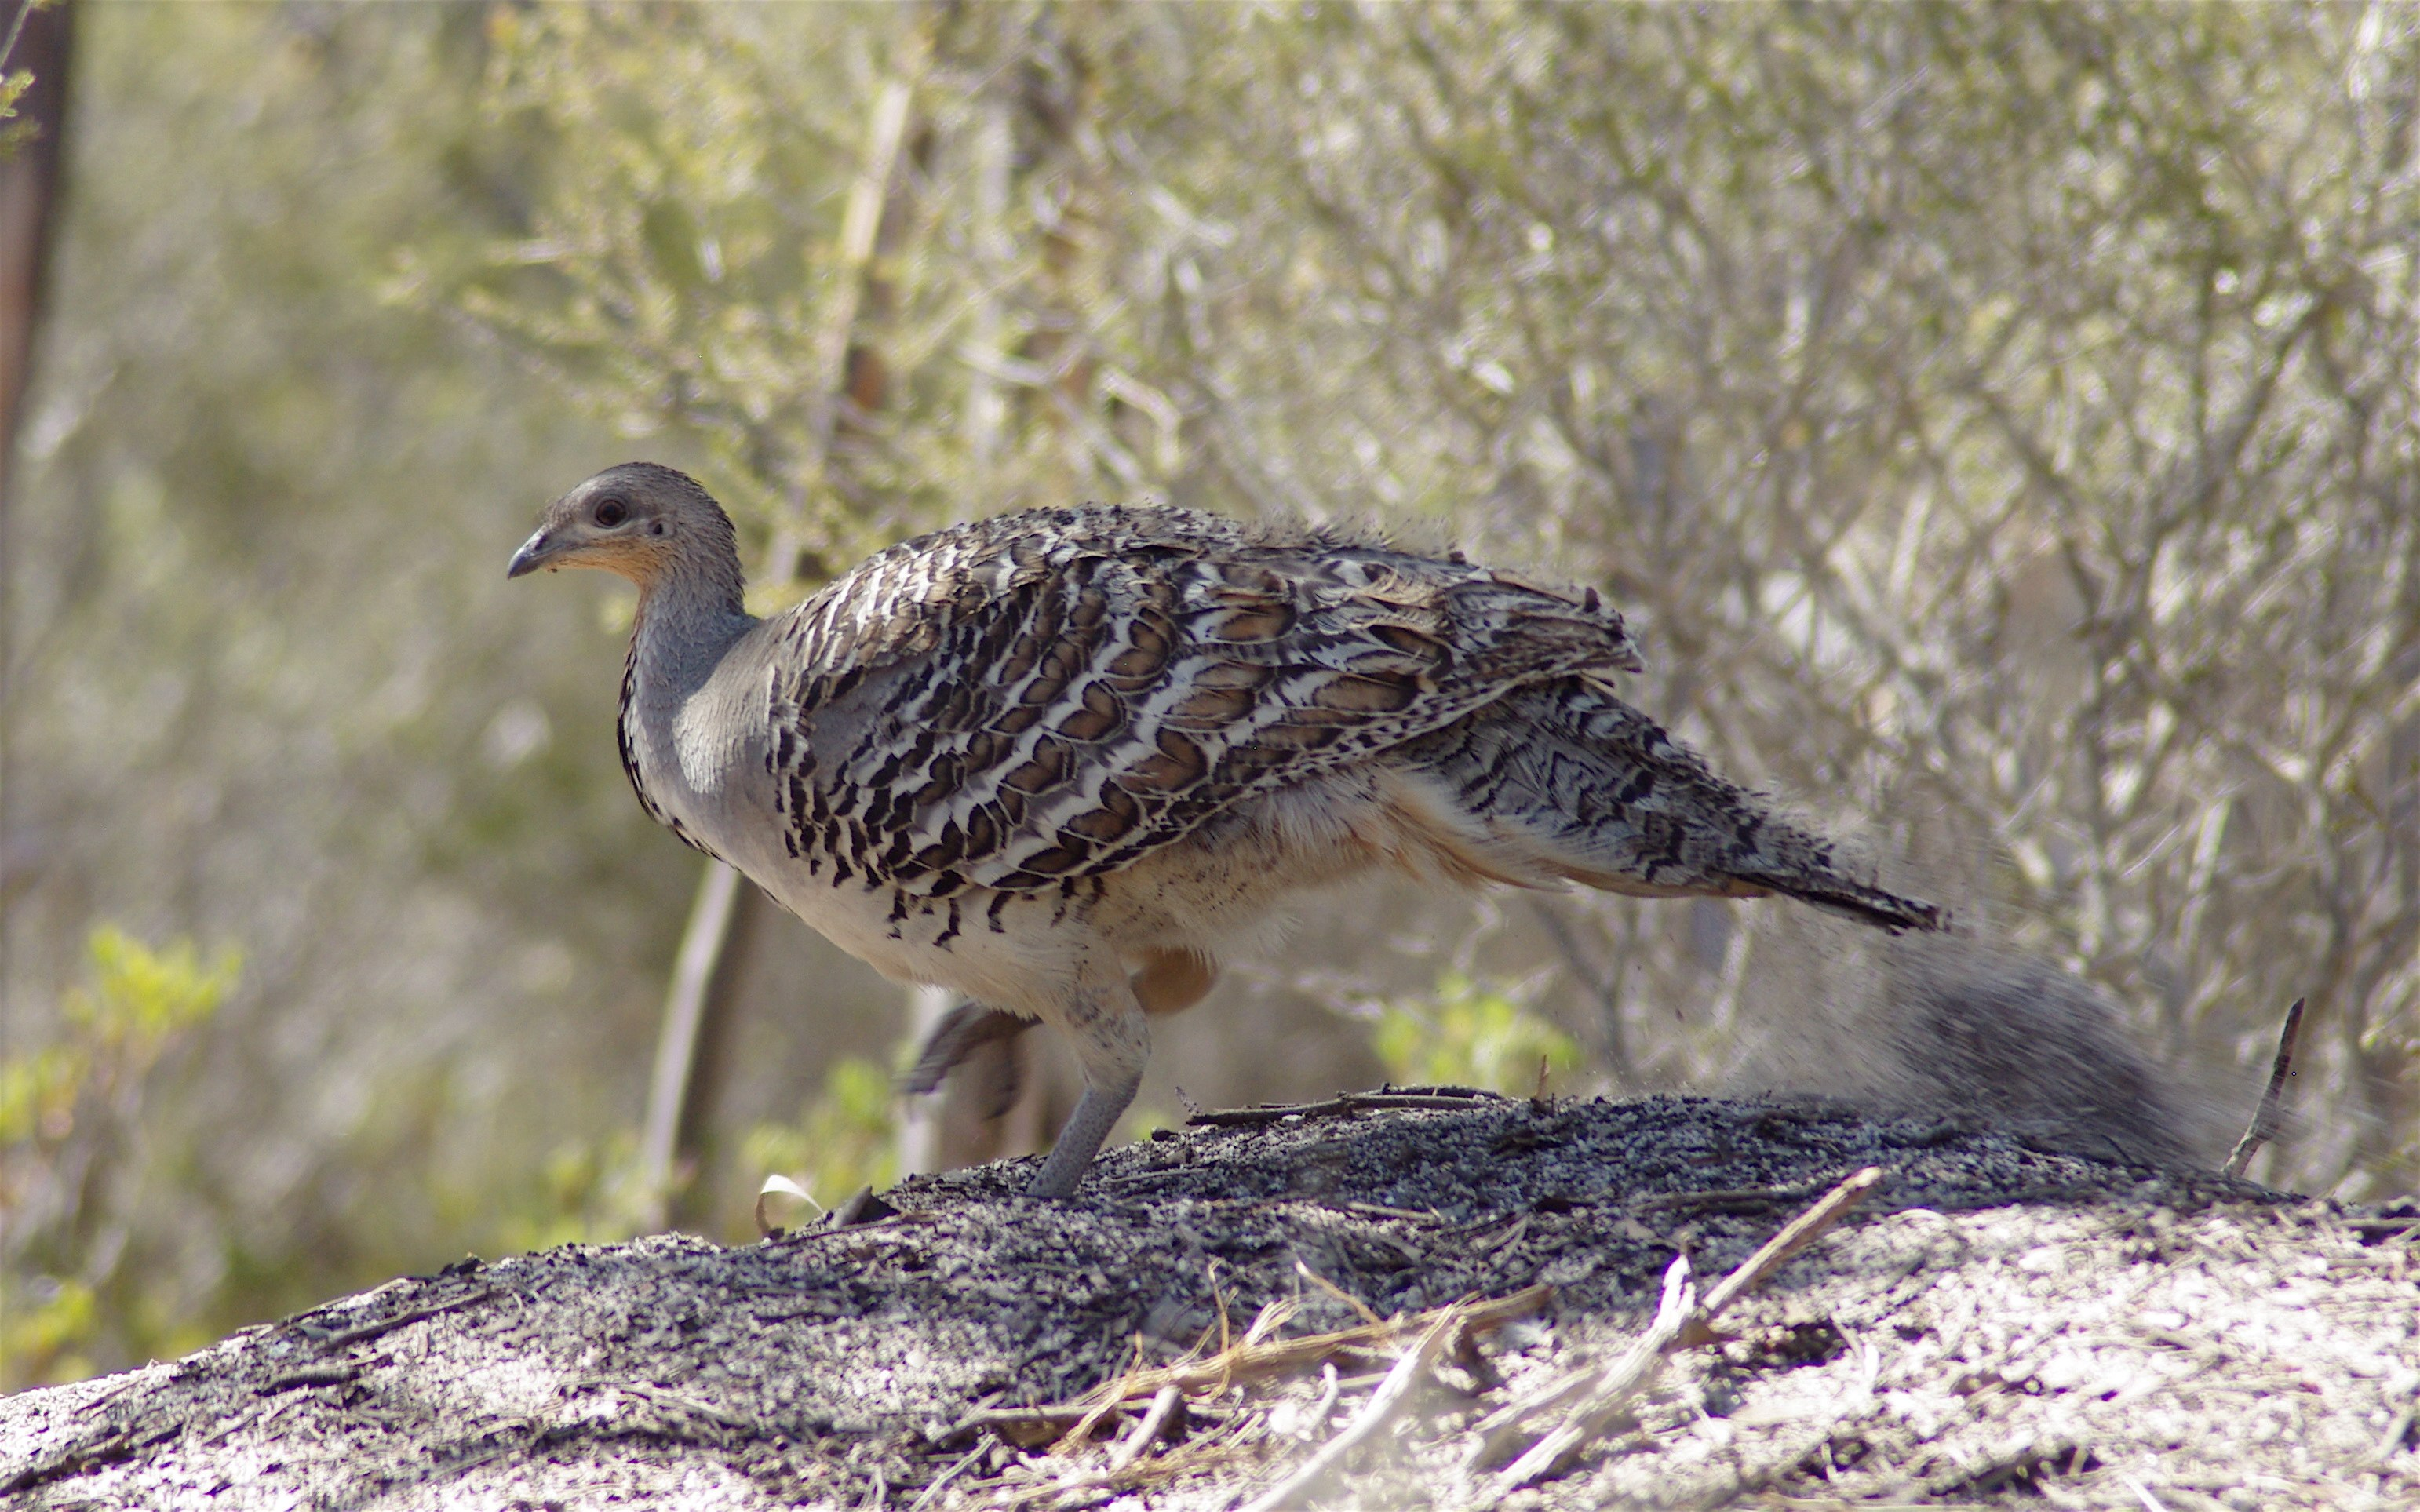 Malleefowl wallpaper